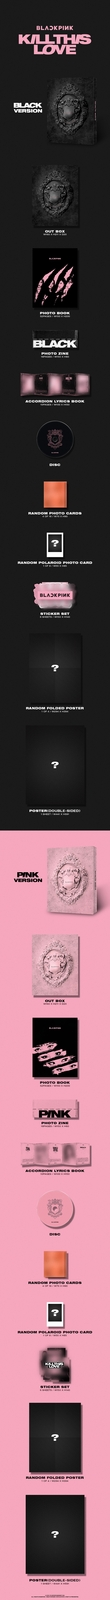 YG Blackpink - Kill This Love [Black ver.] (2nd Mini Album) CD+52p Photobook+ETC